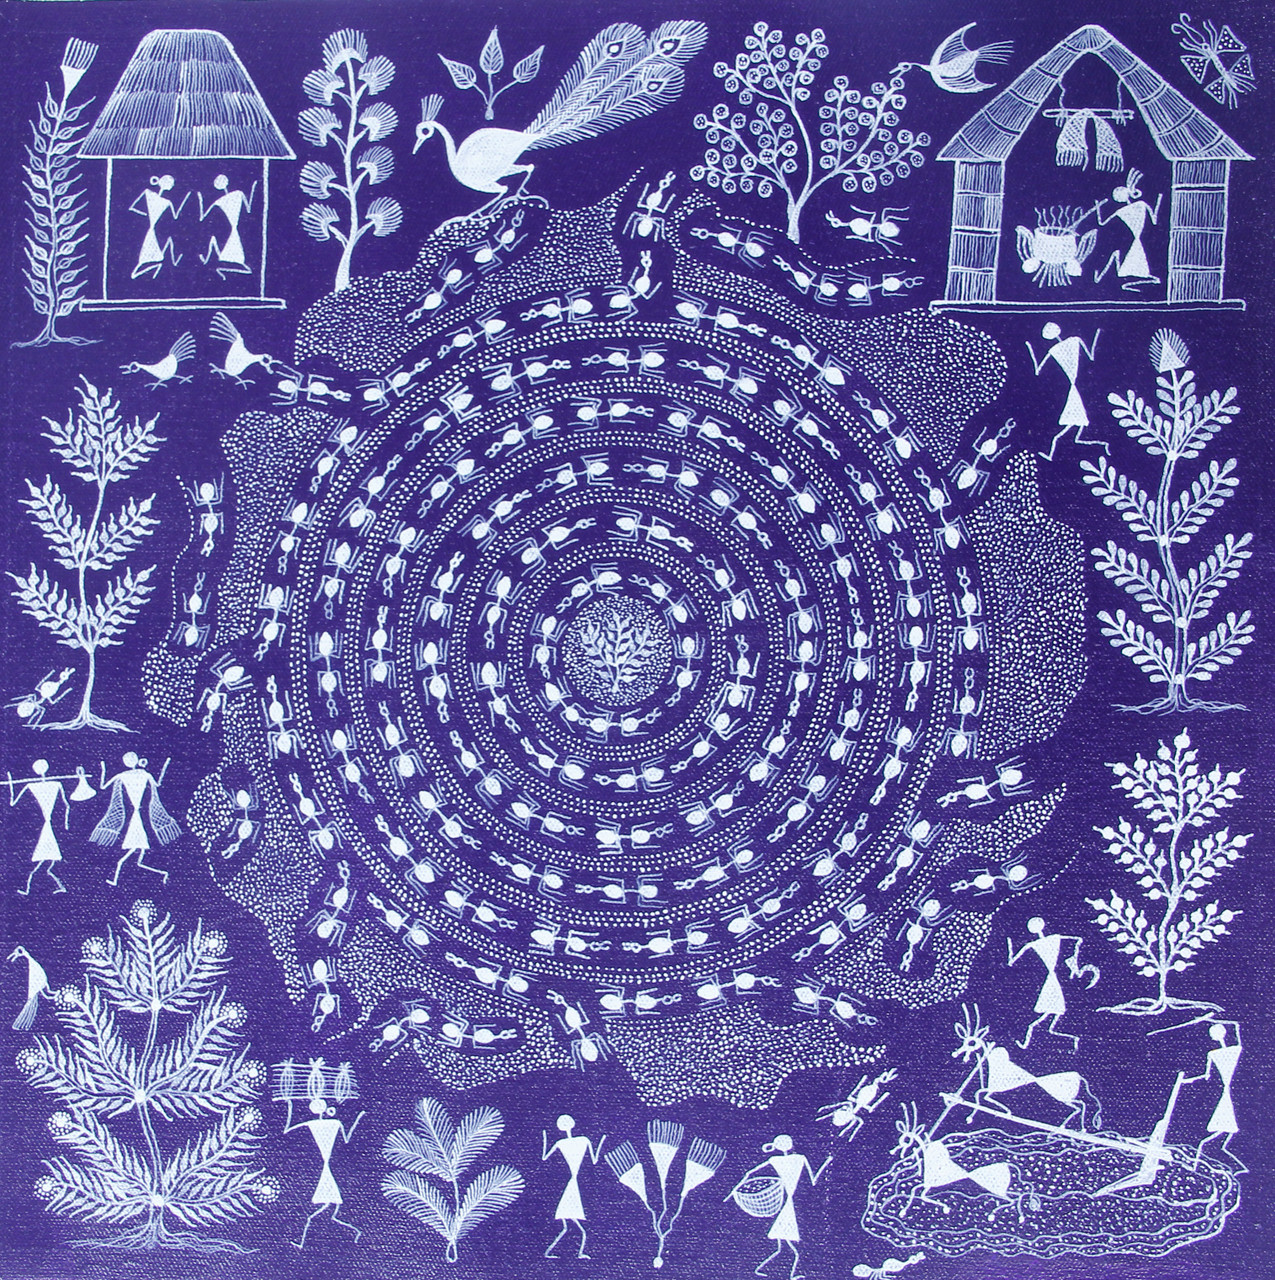 Buy Tribal Warli Painting Indian Traditional Painting On Canvas Tribal Anthill Handmade Painting By Anavita Artistry Studios Private Limited Code Art 7213 45168 Paintings For Sale Online In India